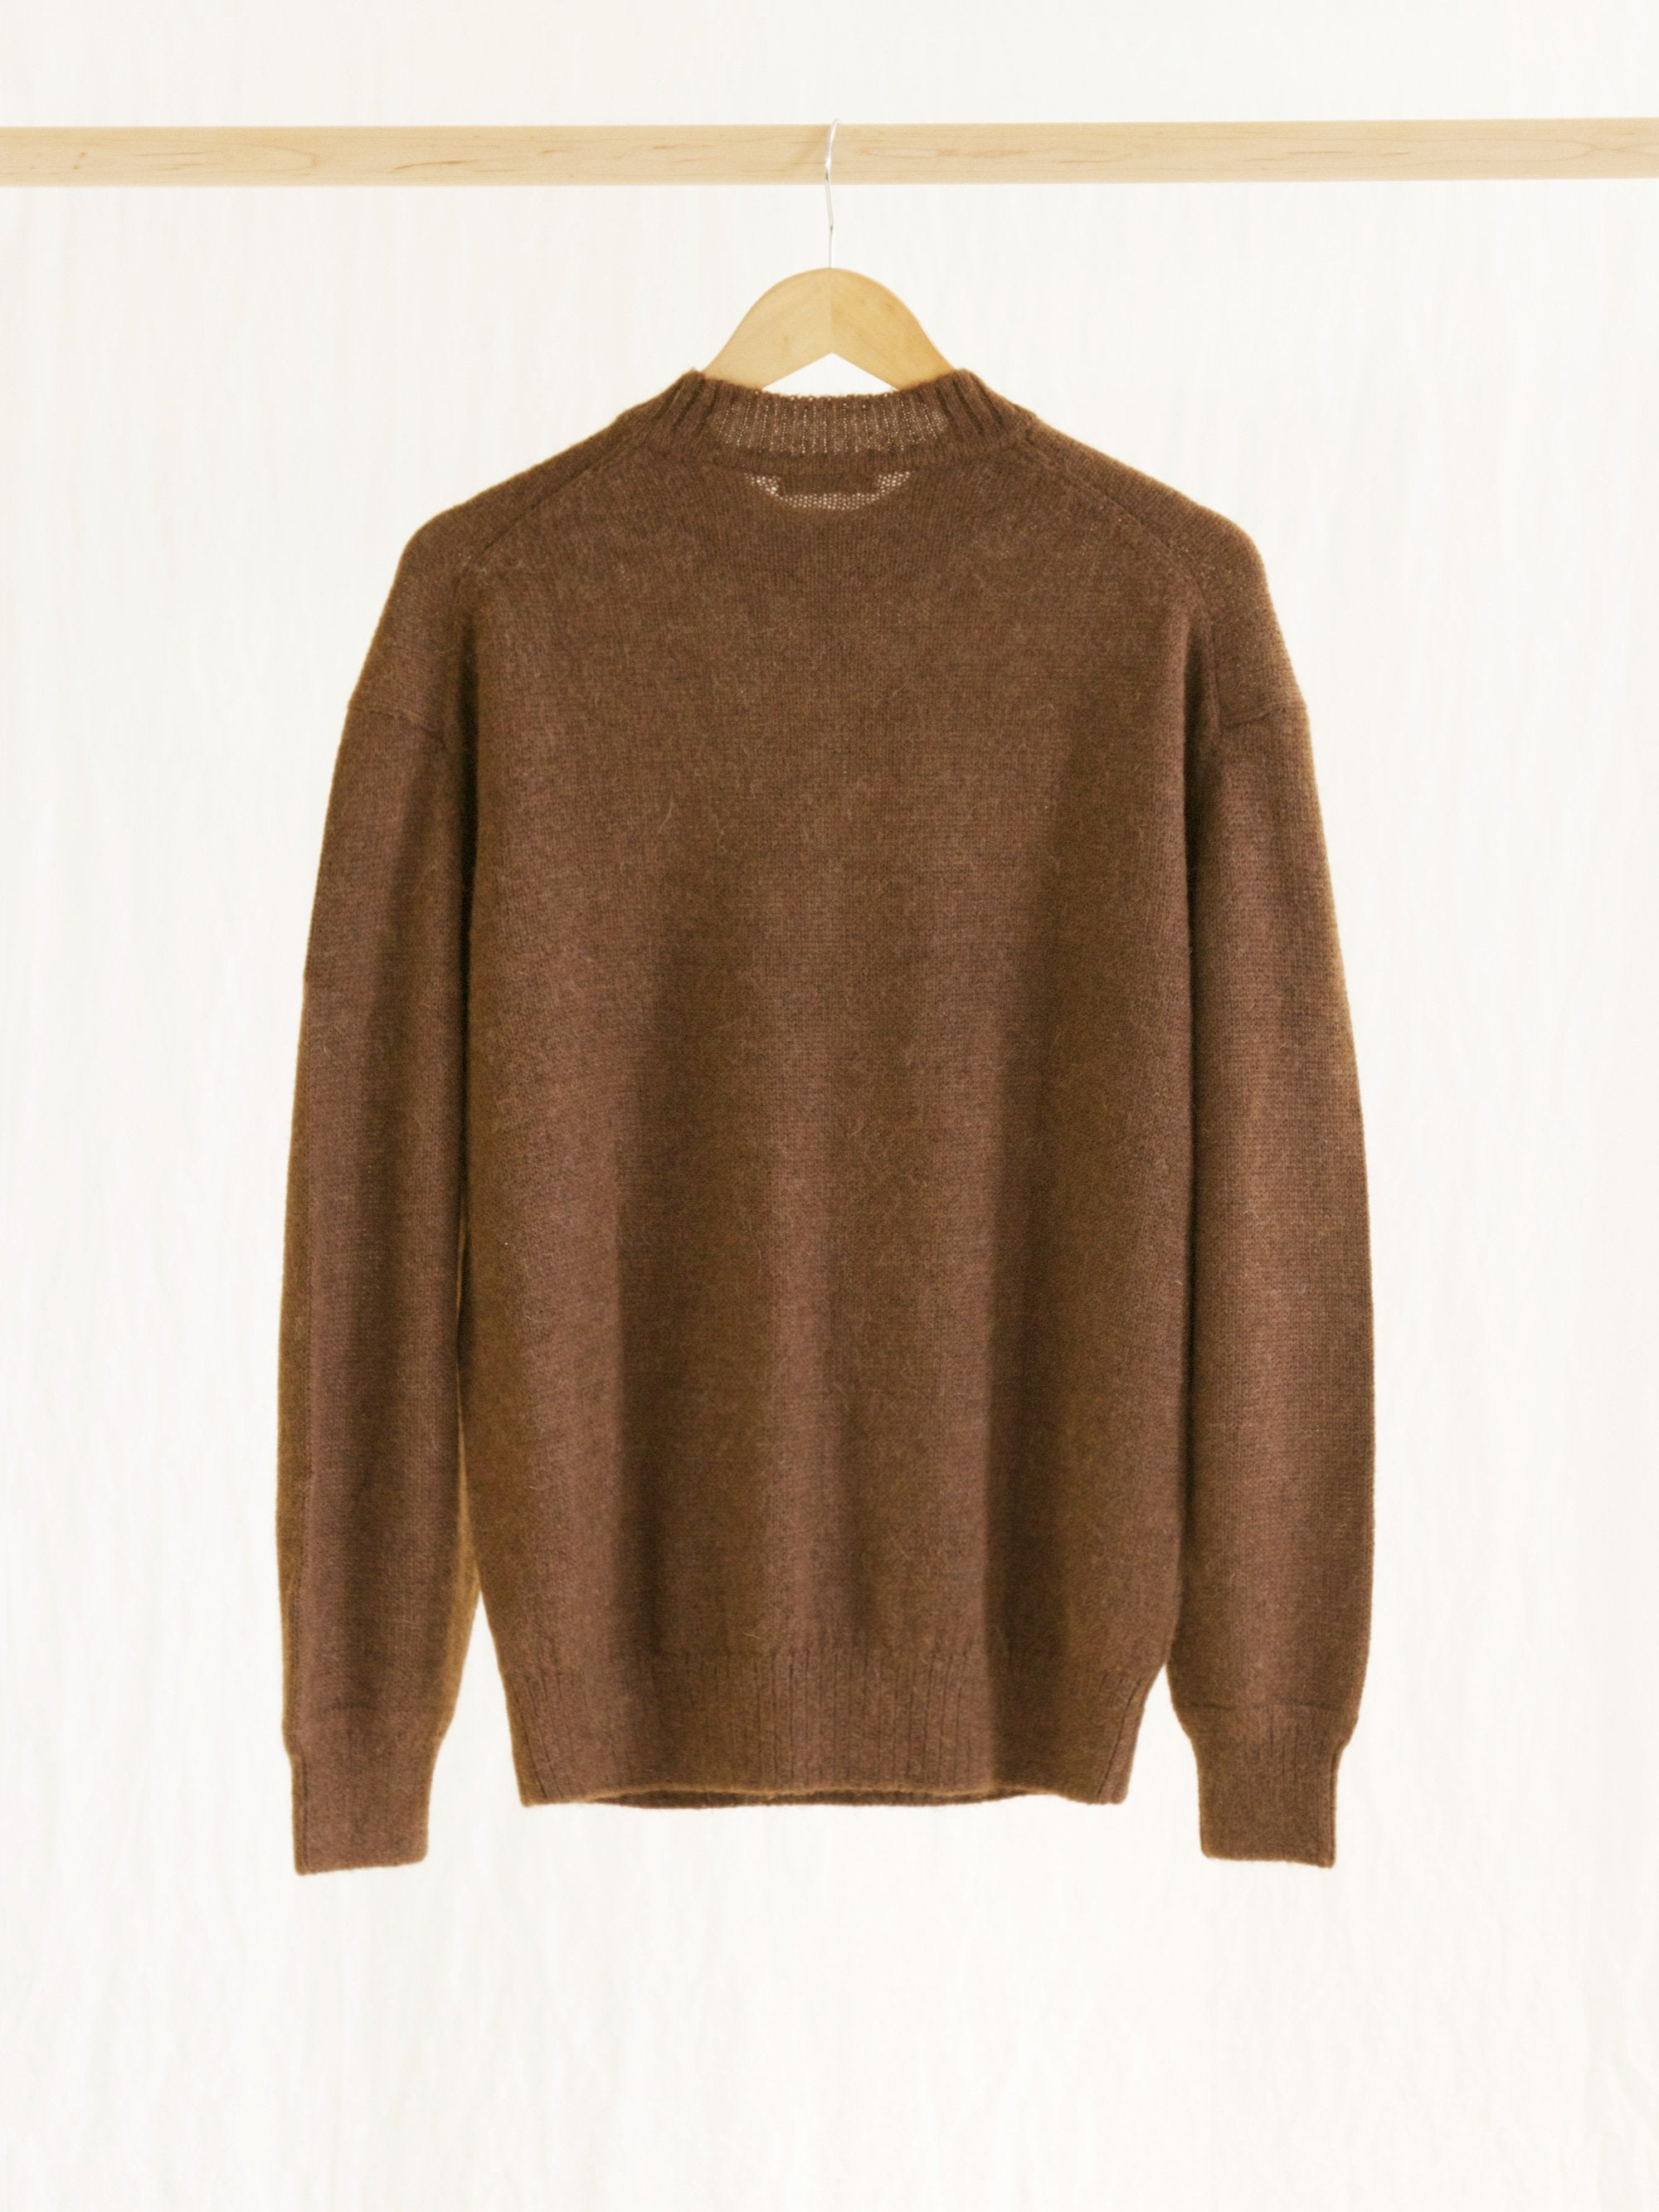 Namu Shop - Phlannel Baby Alpaca Crewneck Knit - Walnut